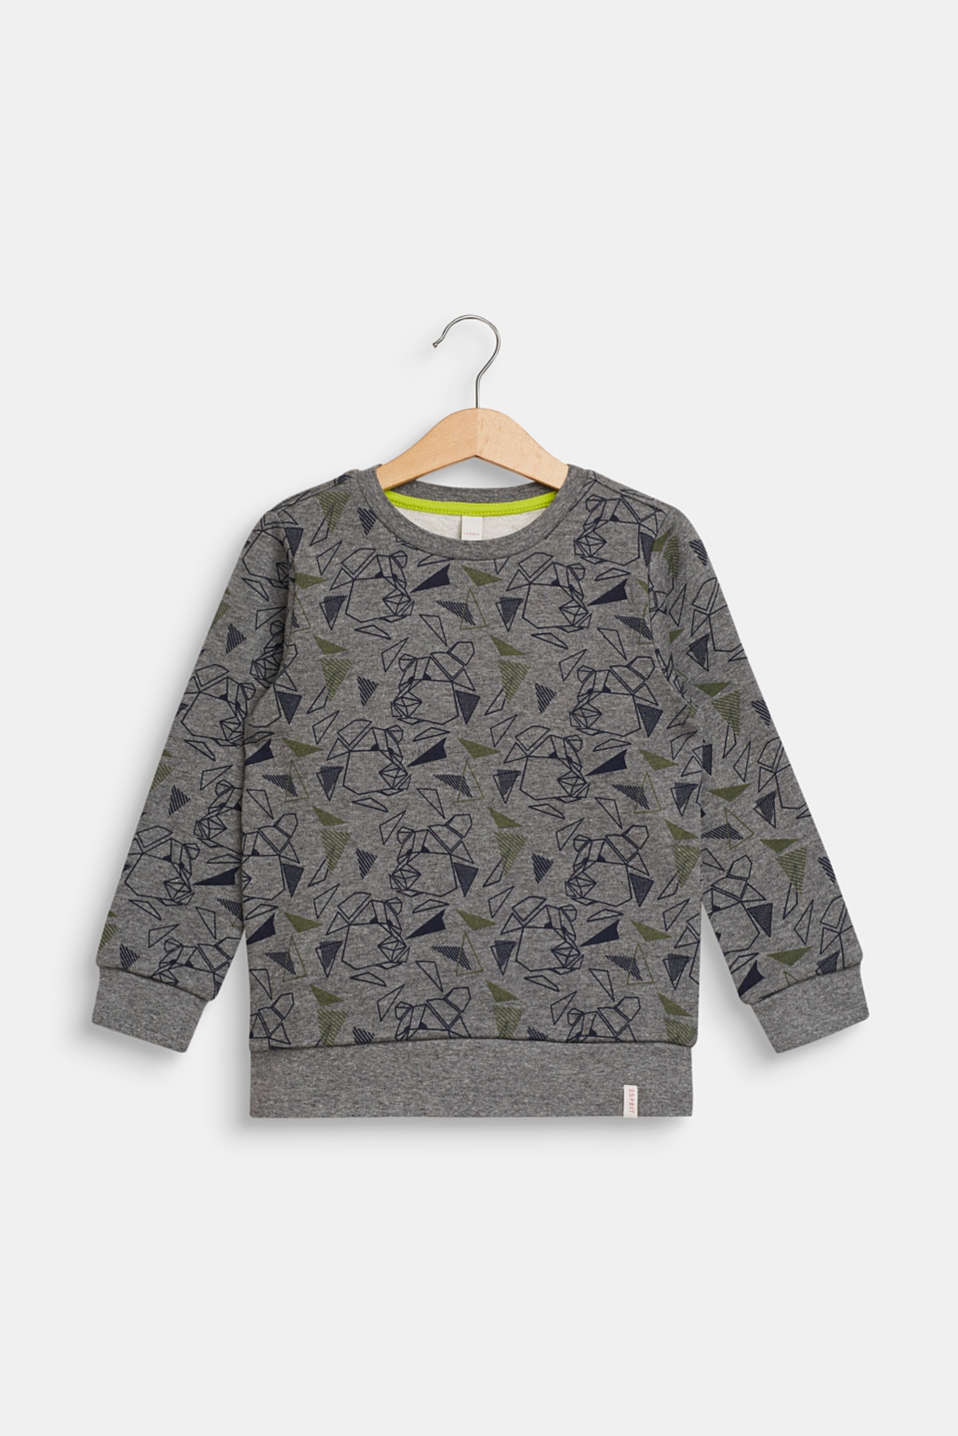 Esprit - Sweatshirt with a cool graphic bear print